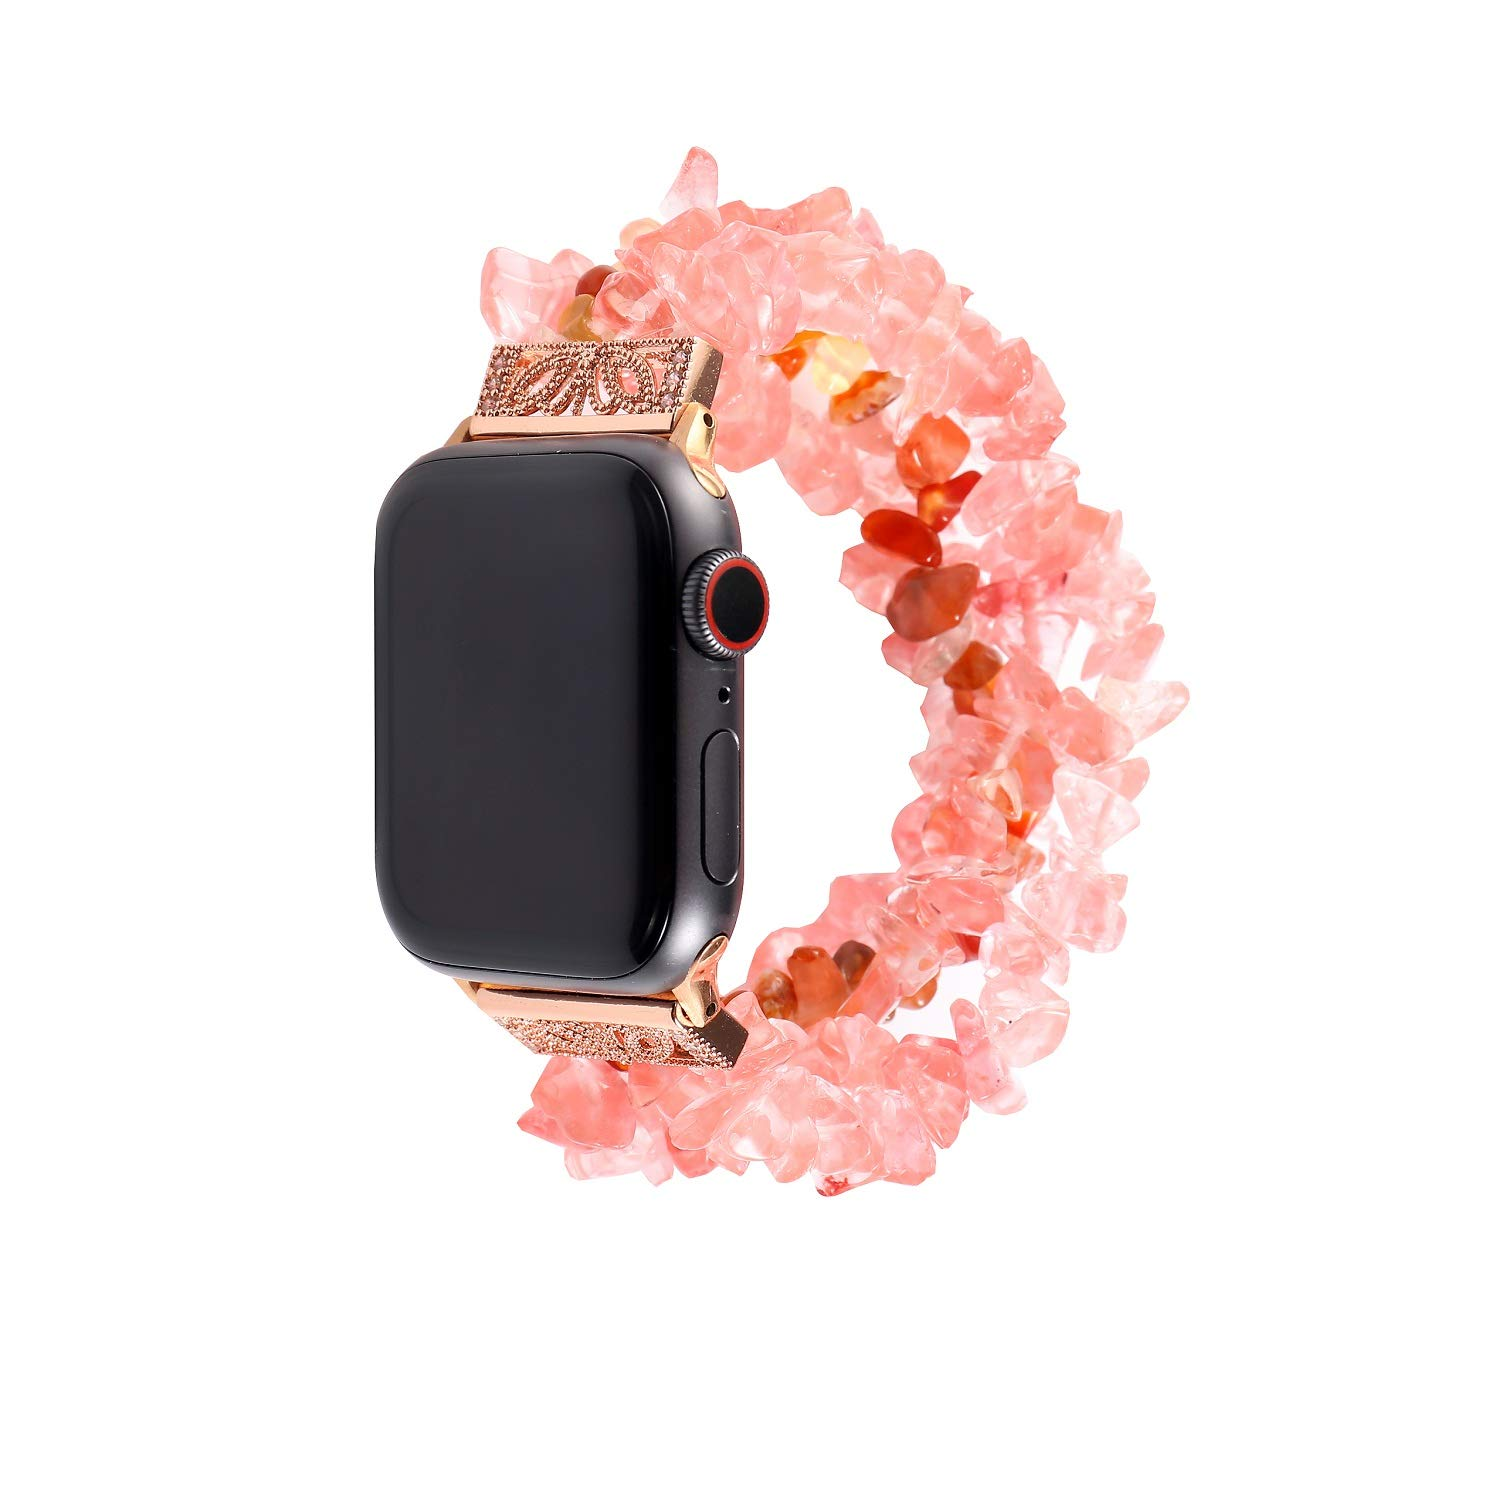 Juzzhou Replacement for Watch Band Apple iWatch Sport Edition Handmade Beaded Faux Natural Bling Stone Crystal Agate Jewels Elastic Stretch Wrist Strap Wristband Wriststrap Girl Women 38mm 40mm by Juzzhou